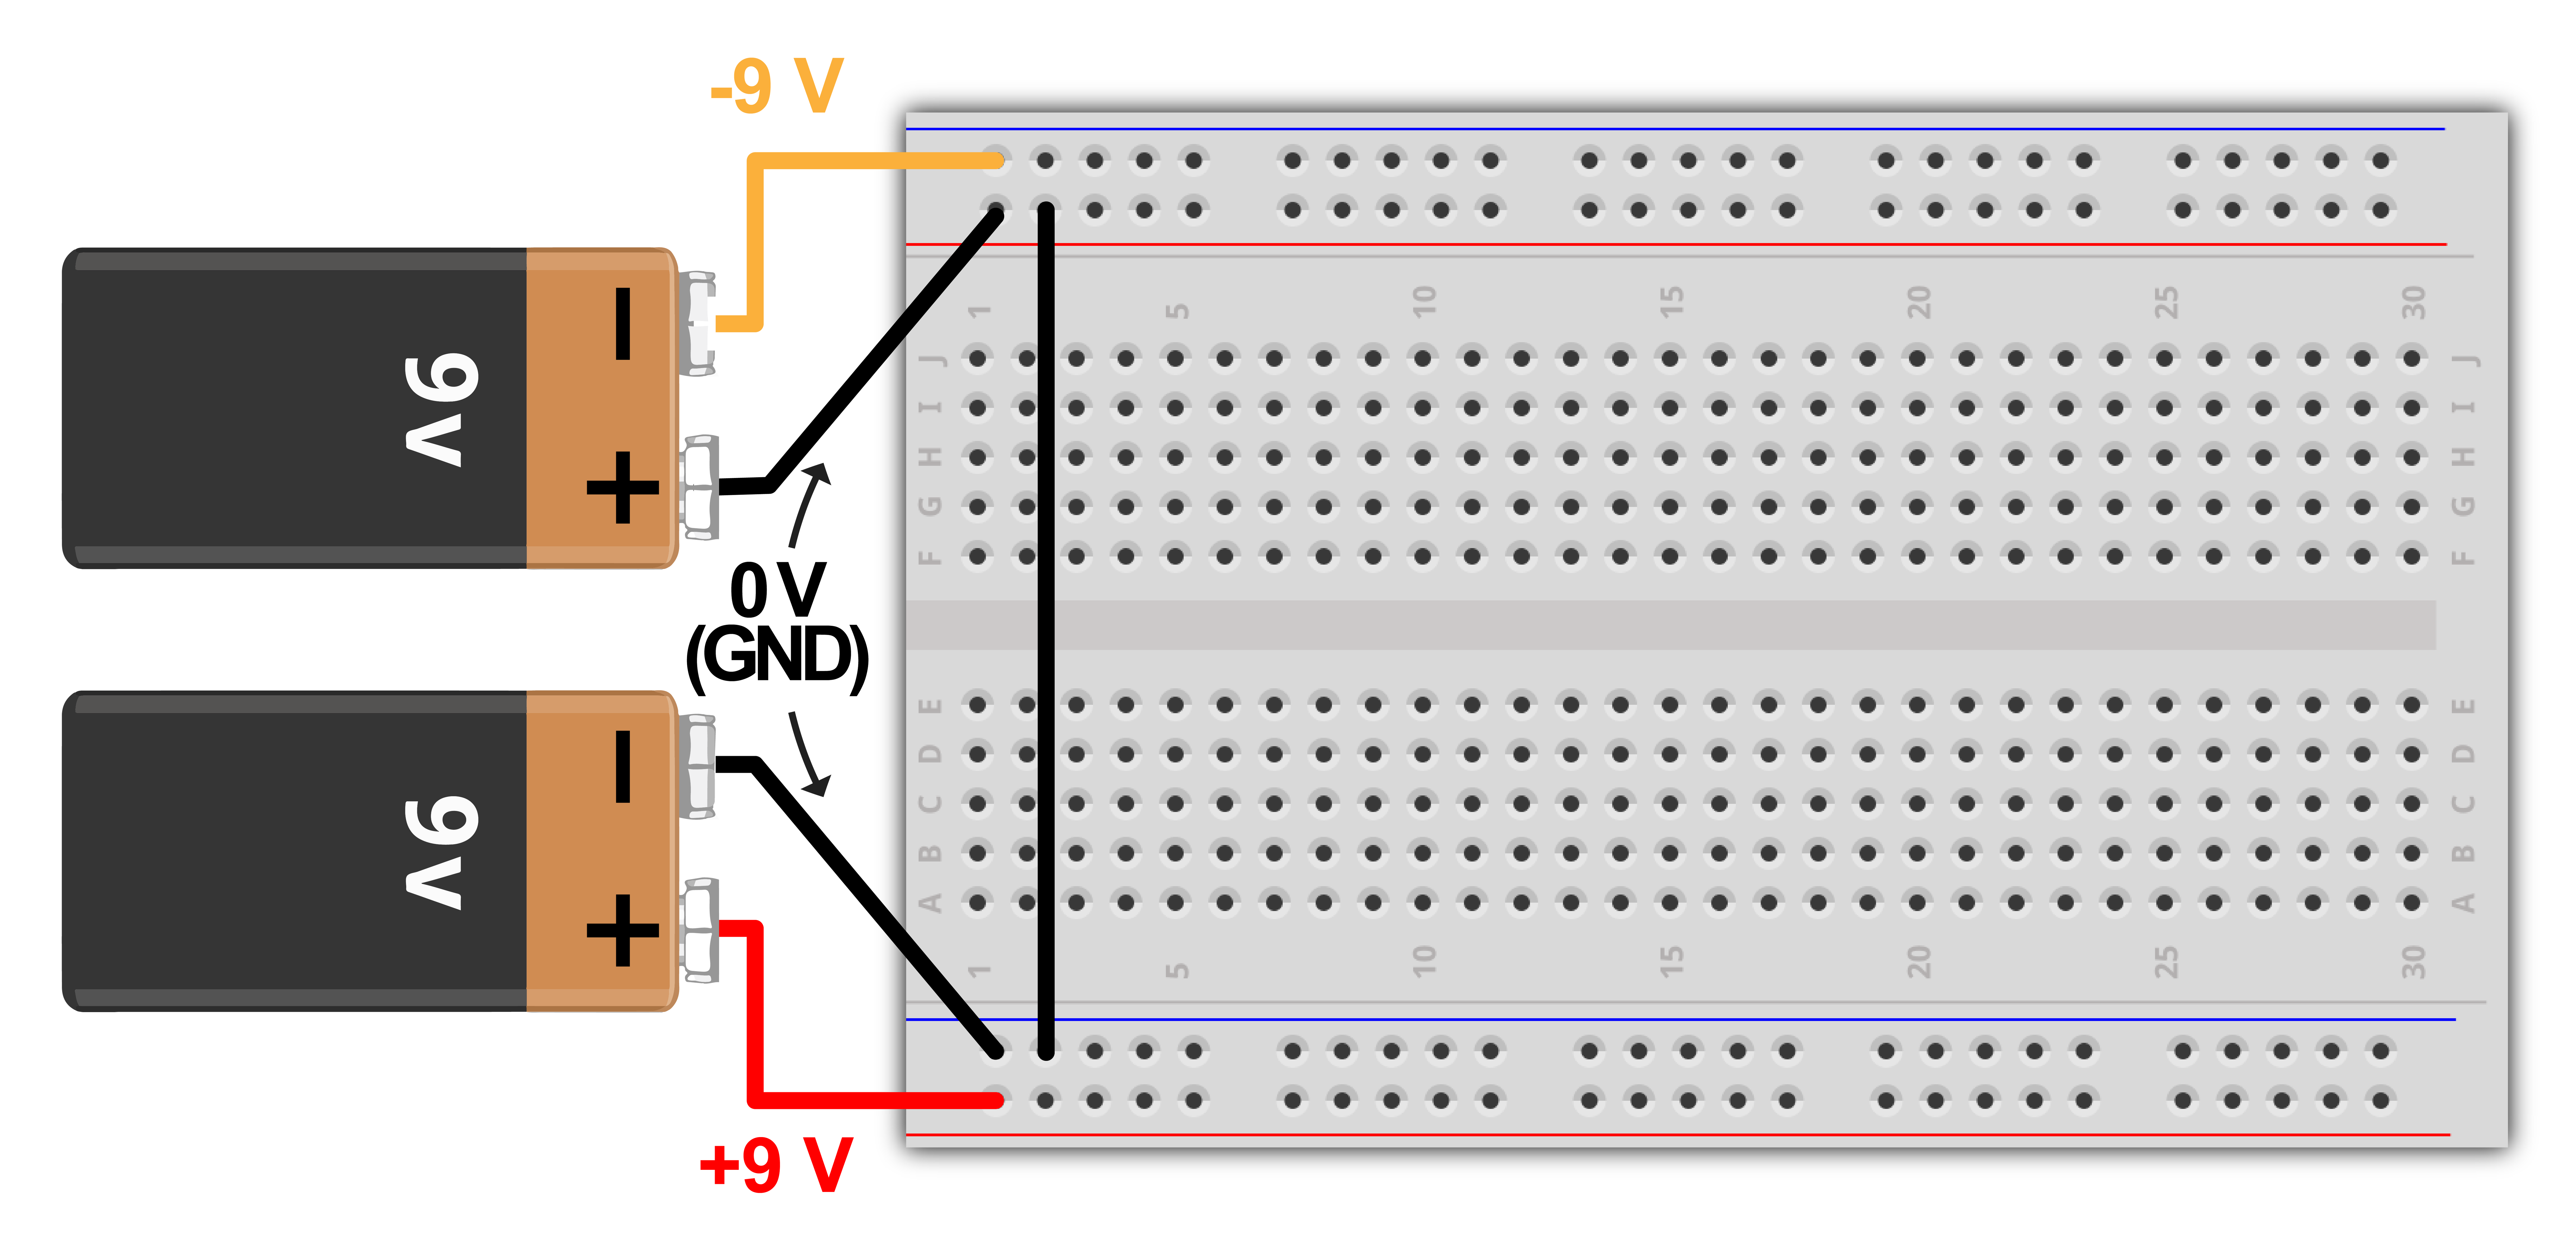 Build An Emg Audio Amplifier Electromyography 8 Steps With Com Images Invertingopampcircuitbreadboardschematicpng To The Circuit We Dont Want Our Connected In Any Way Ac Power From Wall Diagram Below Illustrates How Connect Batteries